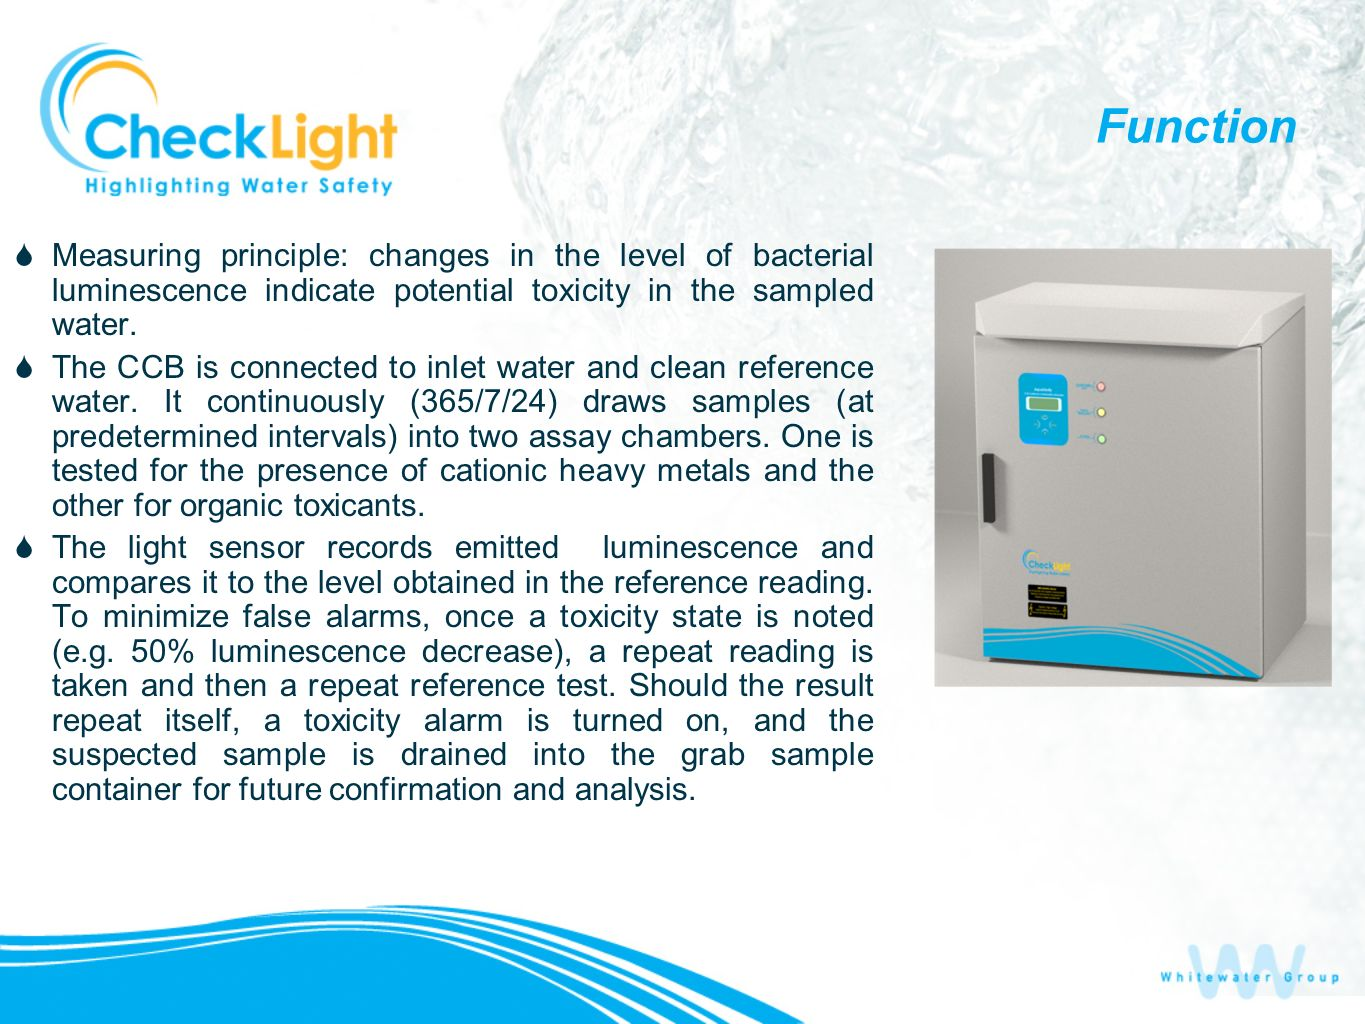 Measuring principle: changes in the level of bacterial luminescence indicate potential toxicity in the sampled water.